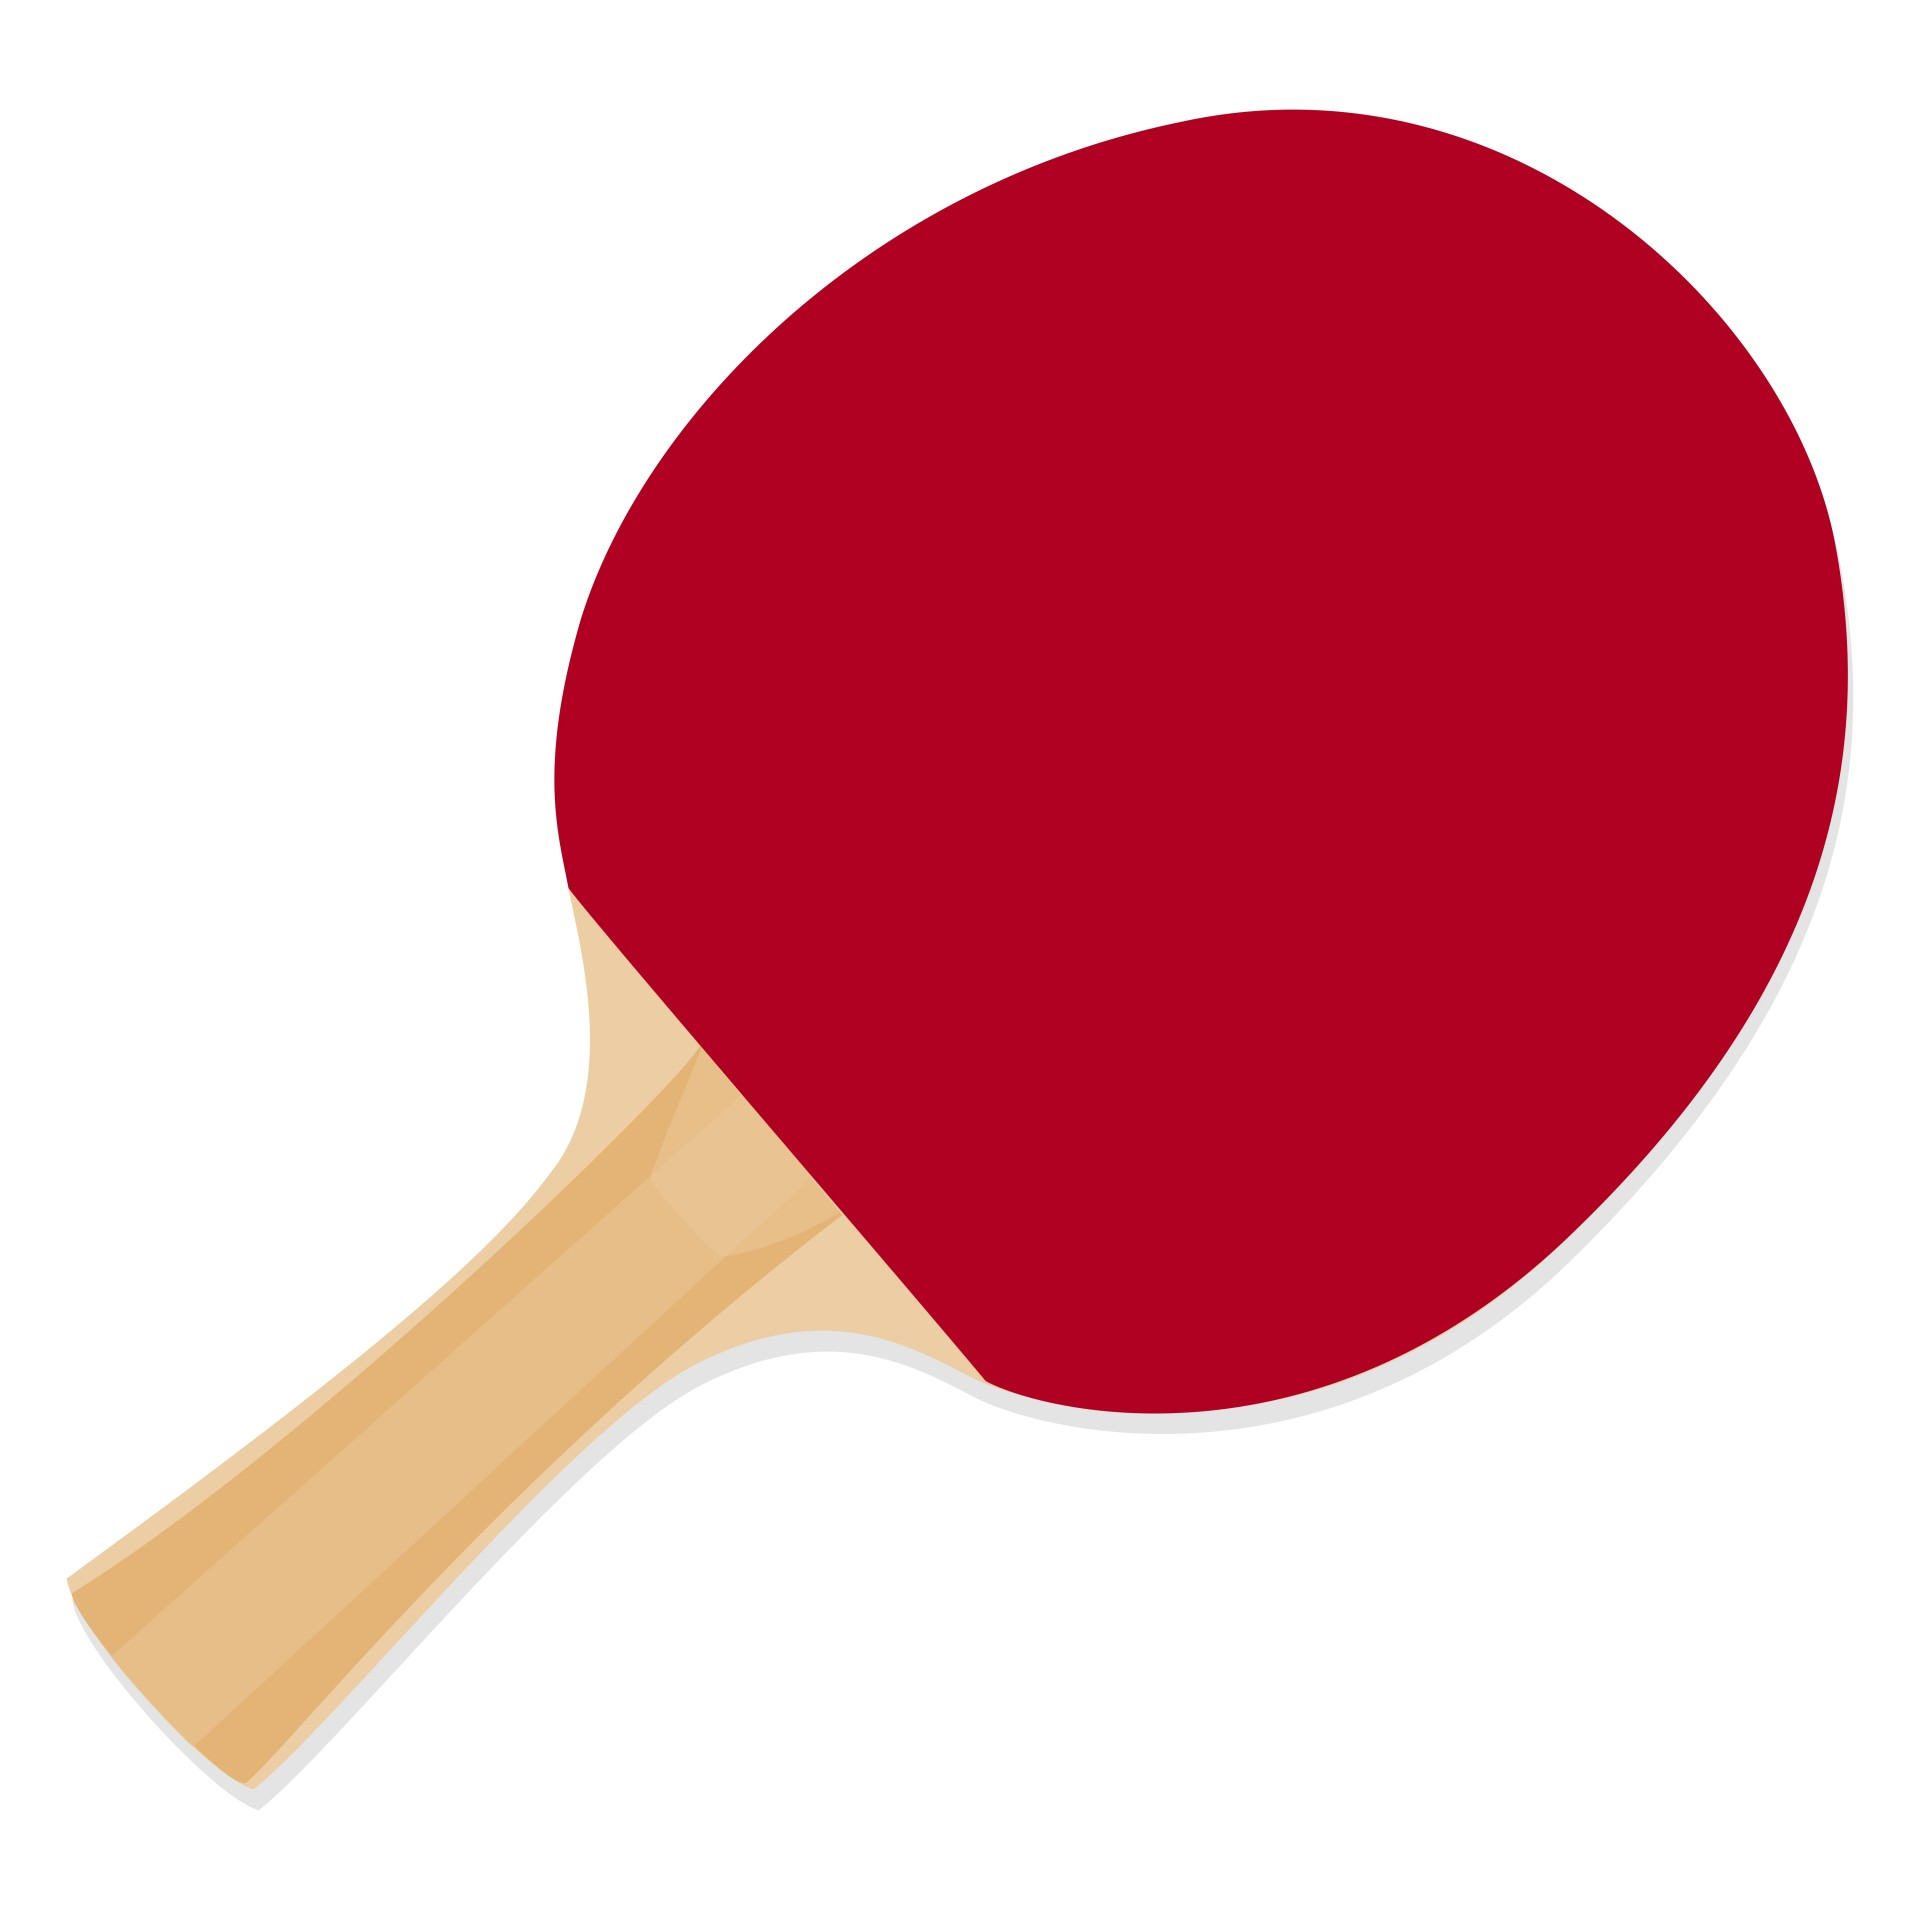 1920x1920 Dhs Ping Pong Paddle A5002, Table Tennis Racket